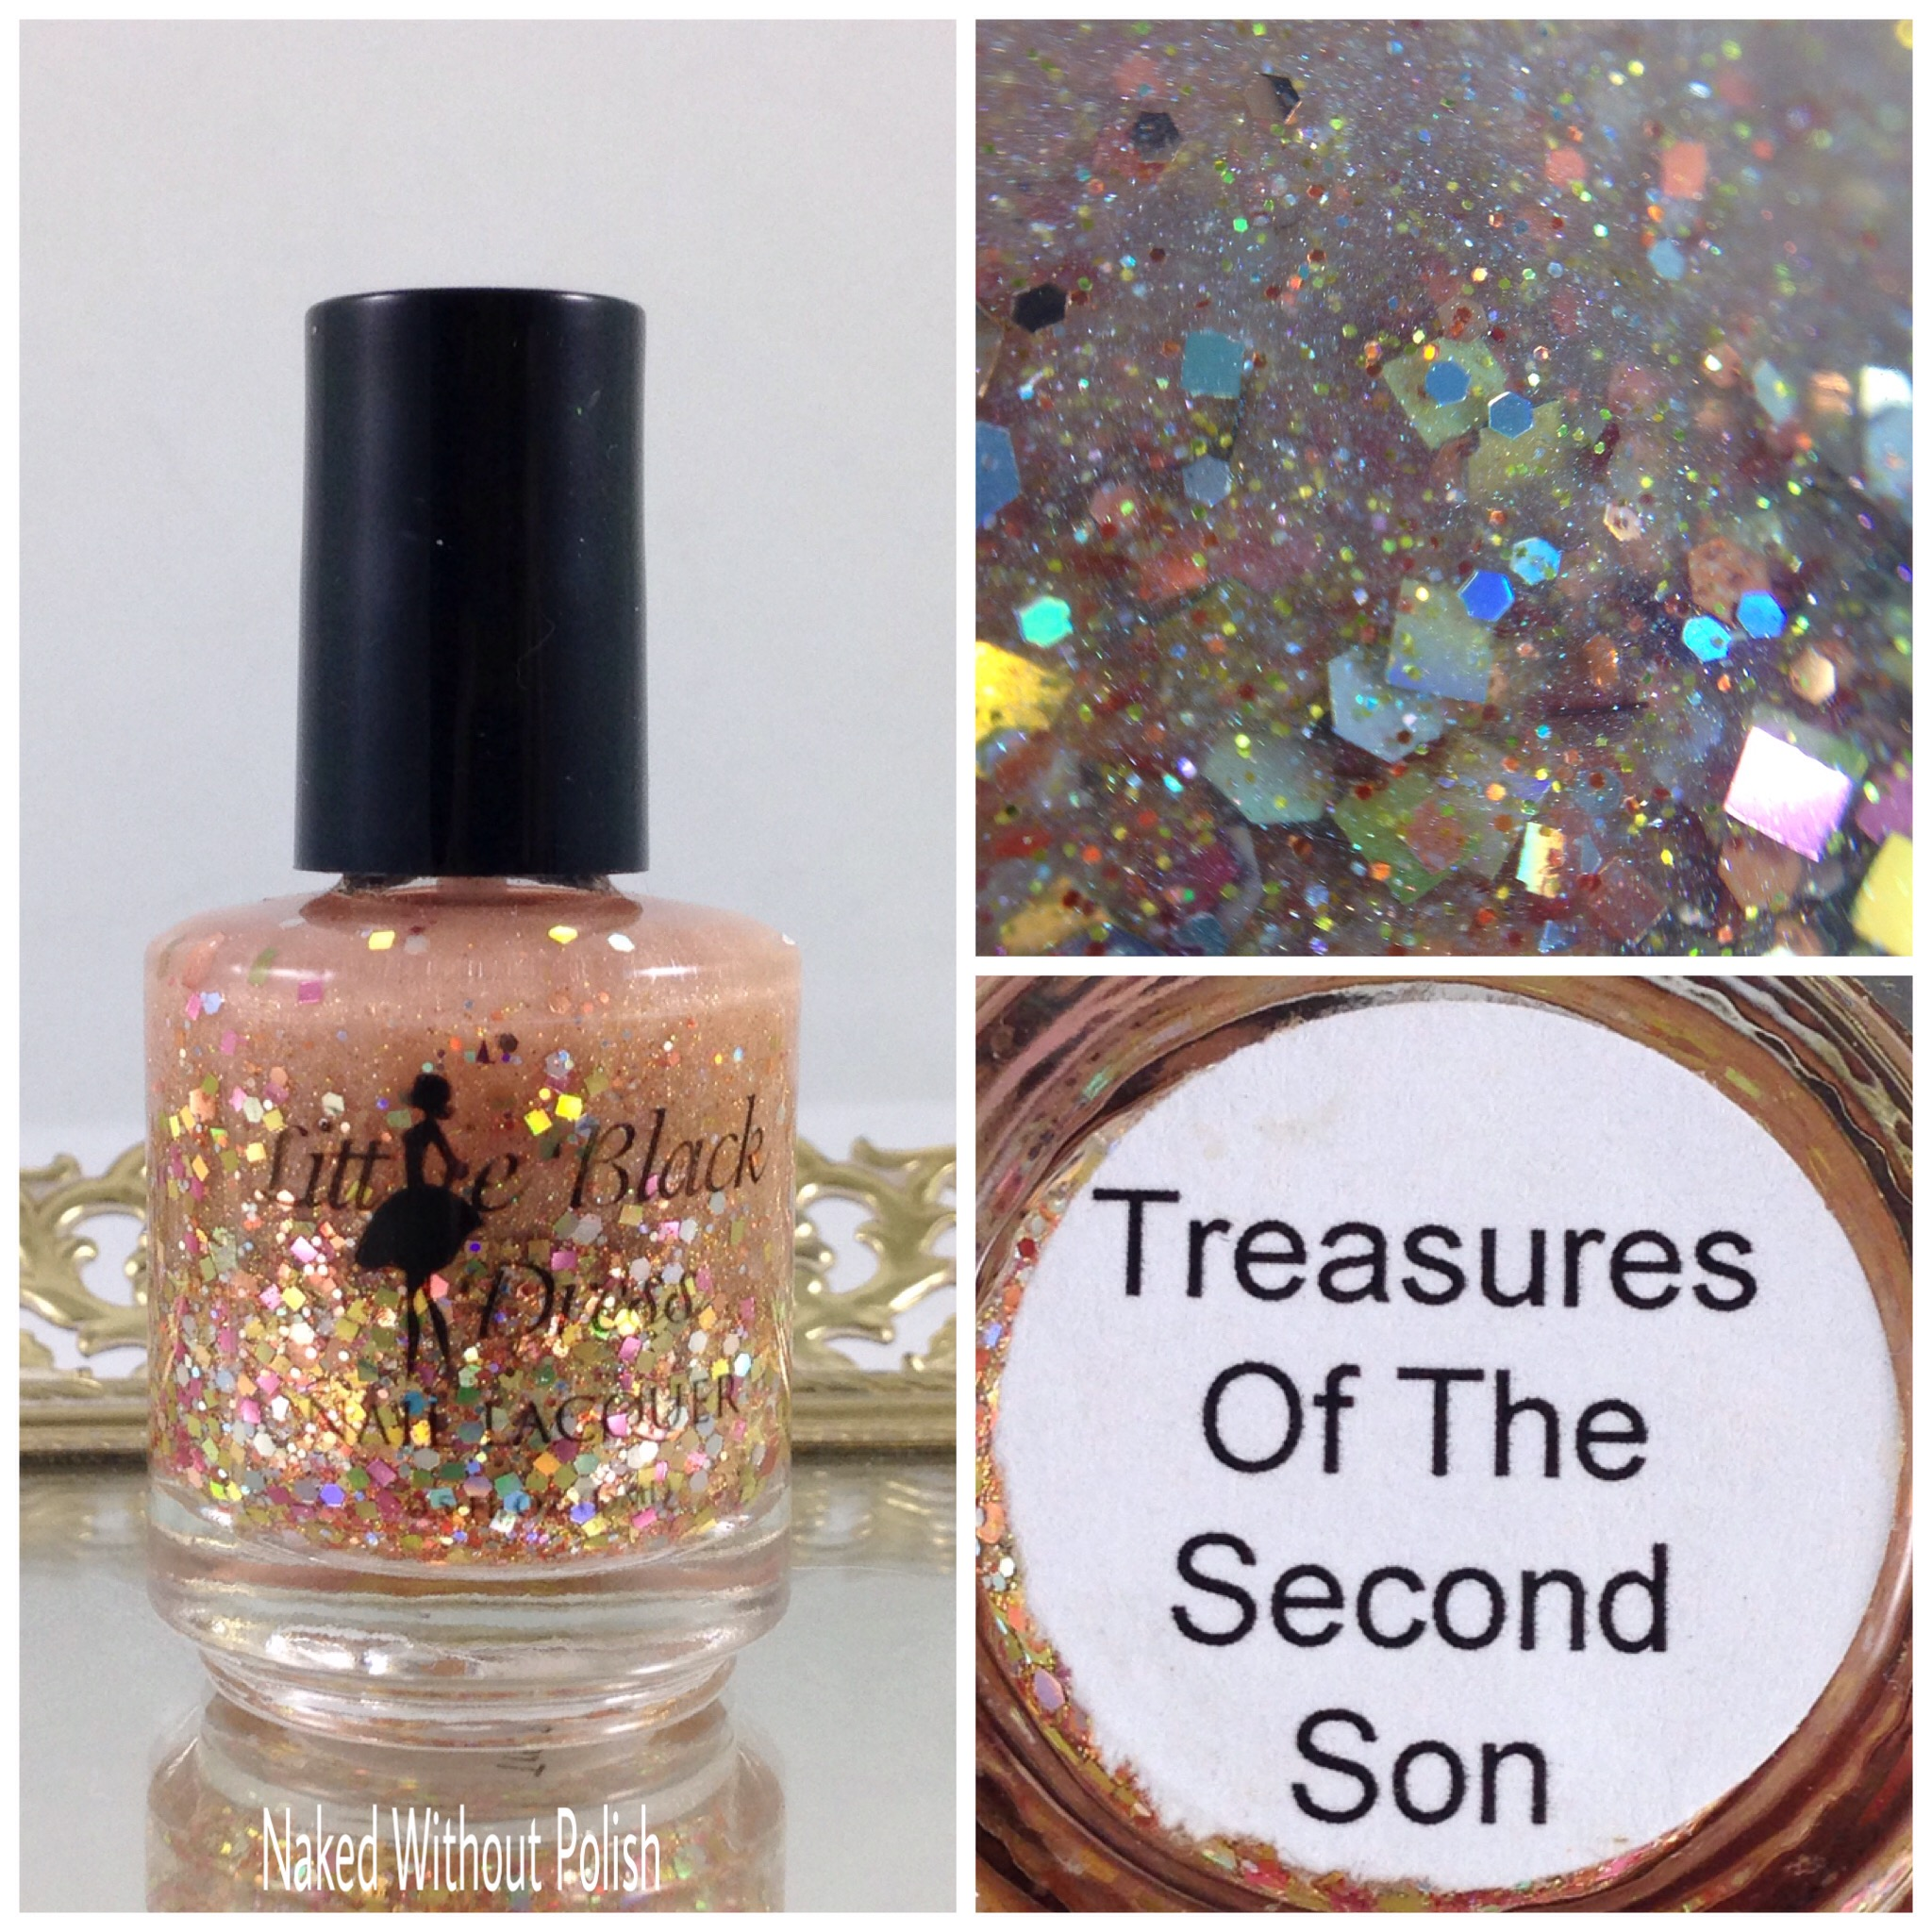 Little-Black-Dress-Nail-Lacquer-Treasures-of-the-Second-Son-1